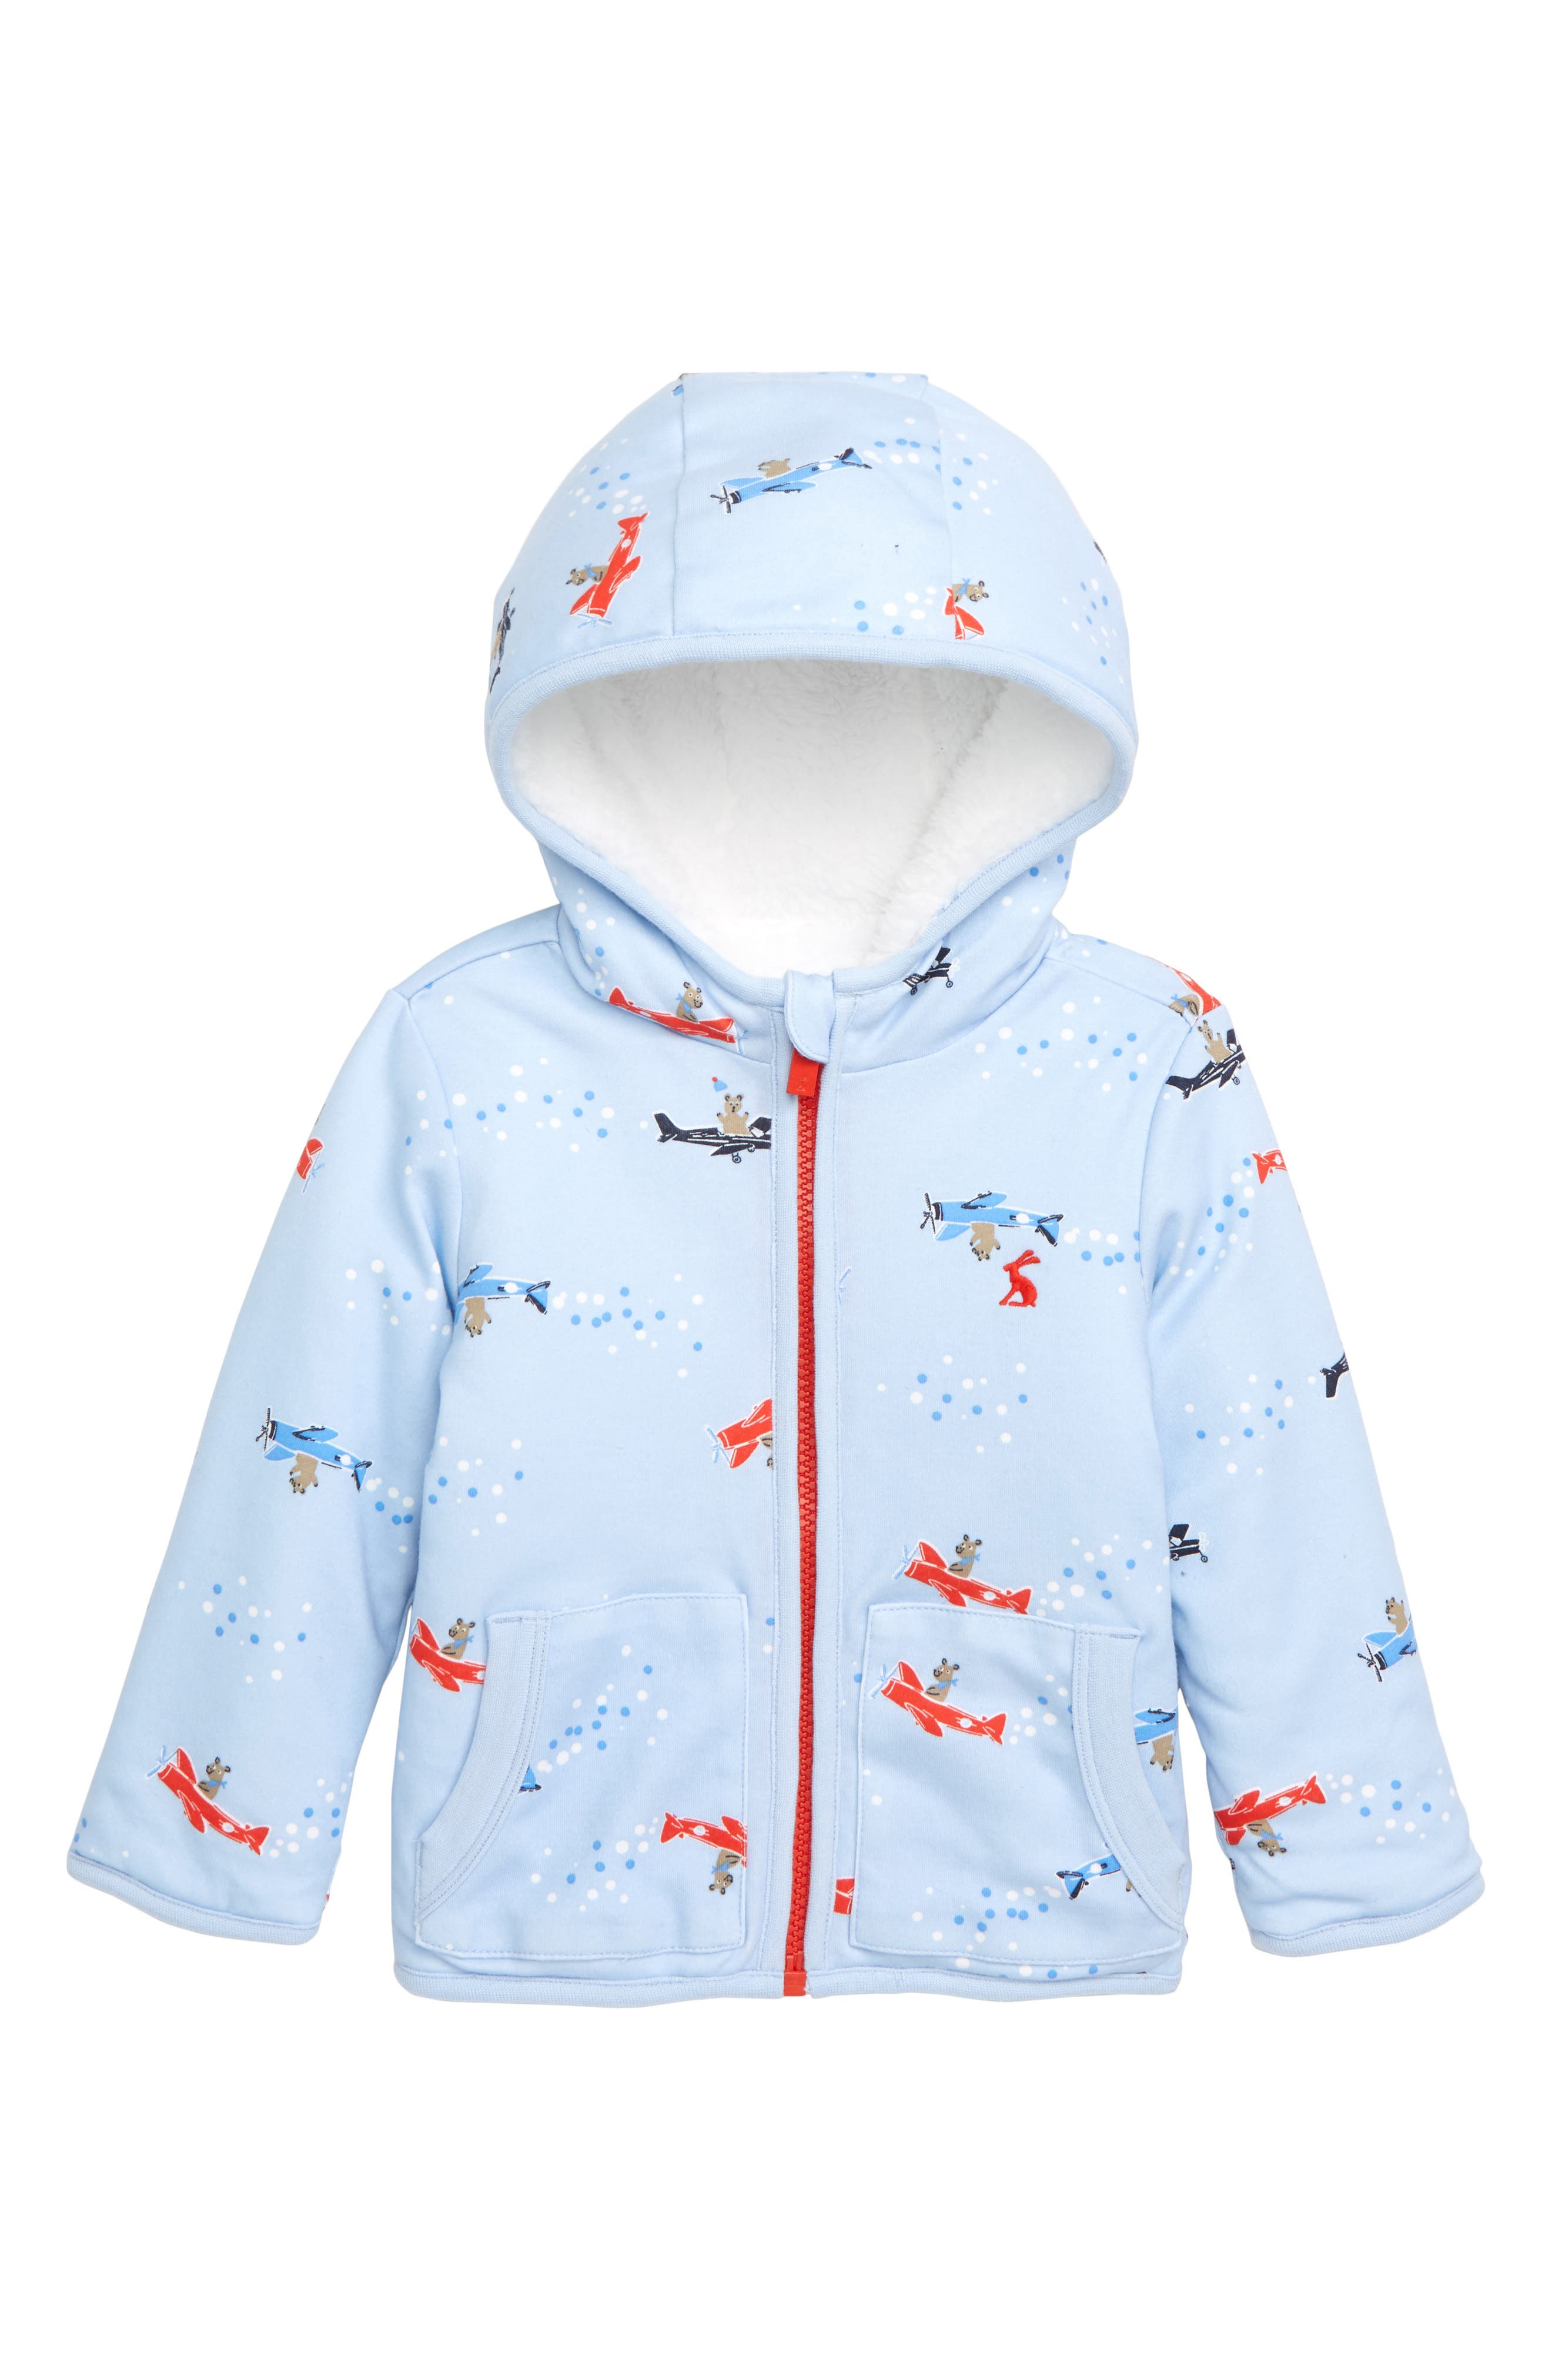 JOULES, James Reversible Fleece Jacket, Main thumbnail 1, color, BLPLNEBEAR